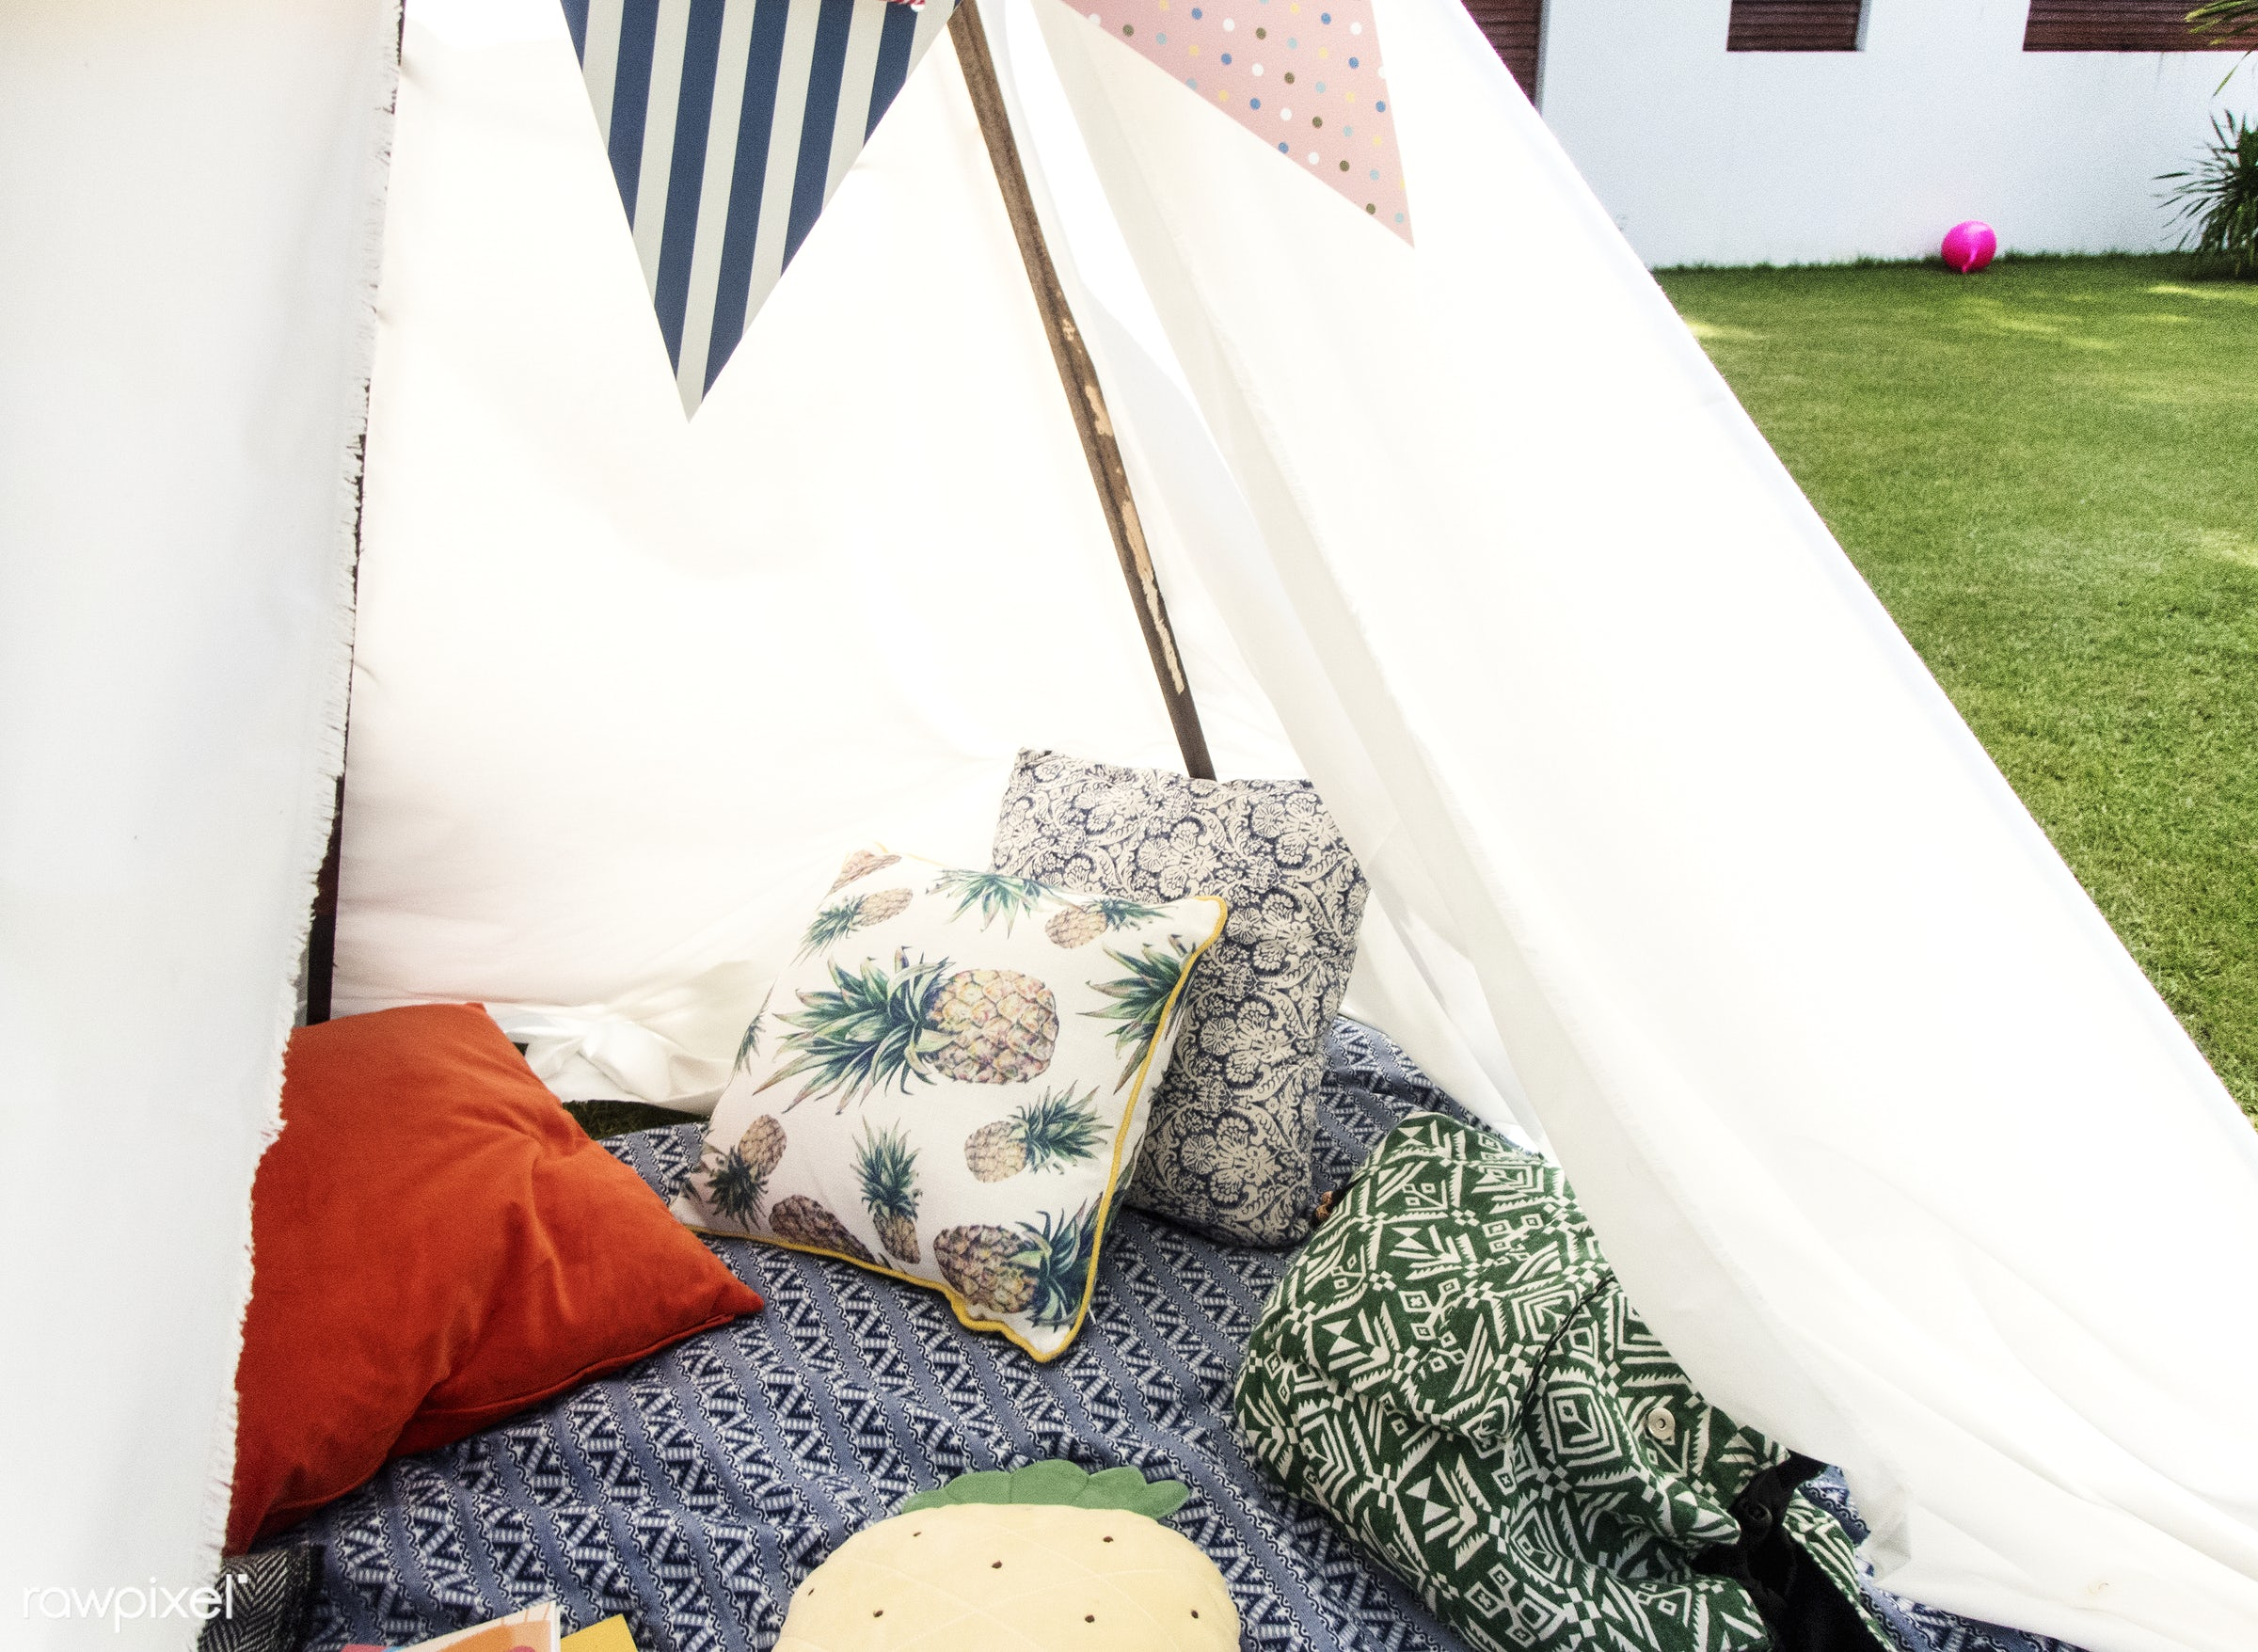 backyard, tent, activity, childhood, closeup, cushions, grass, imagination, leisure, nature, nobody, objects, outdoors, park...